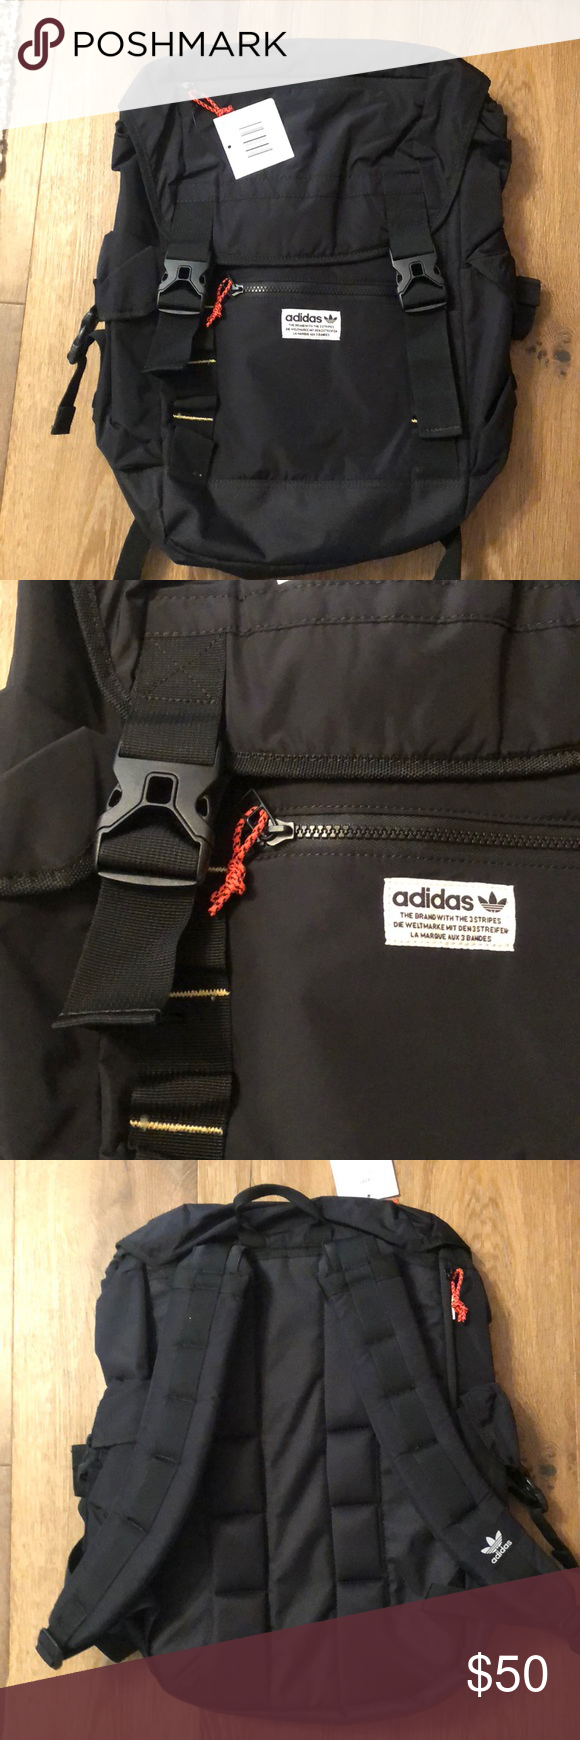 74dccdd3aff7 adidas Originals Urban Utility backpack Outdoor inspired pack includes two  side pockets and two smaller zip pockets. Main compartment has padded laptop  ...